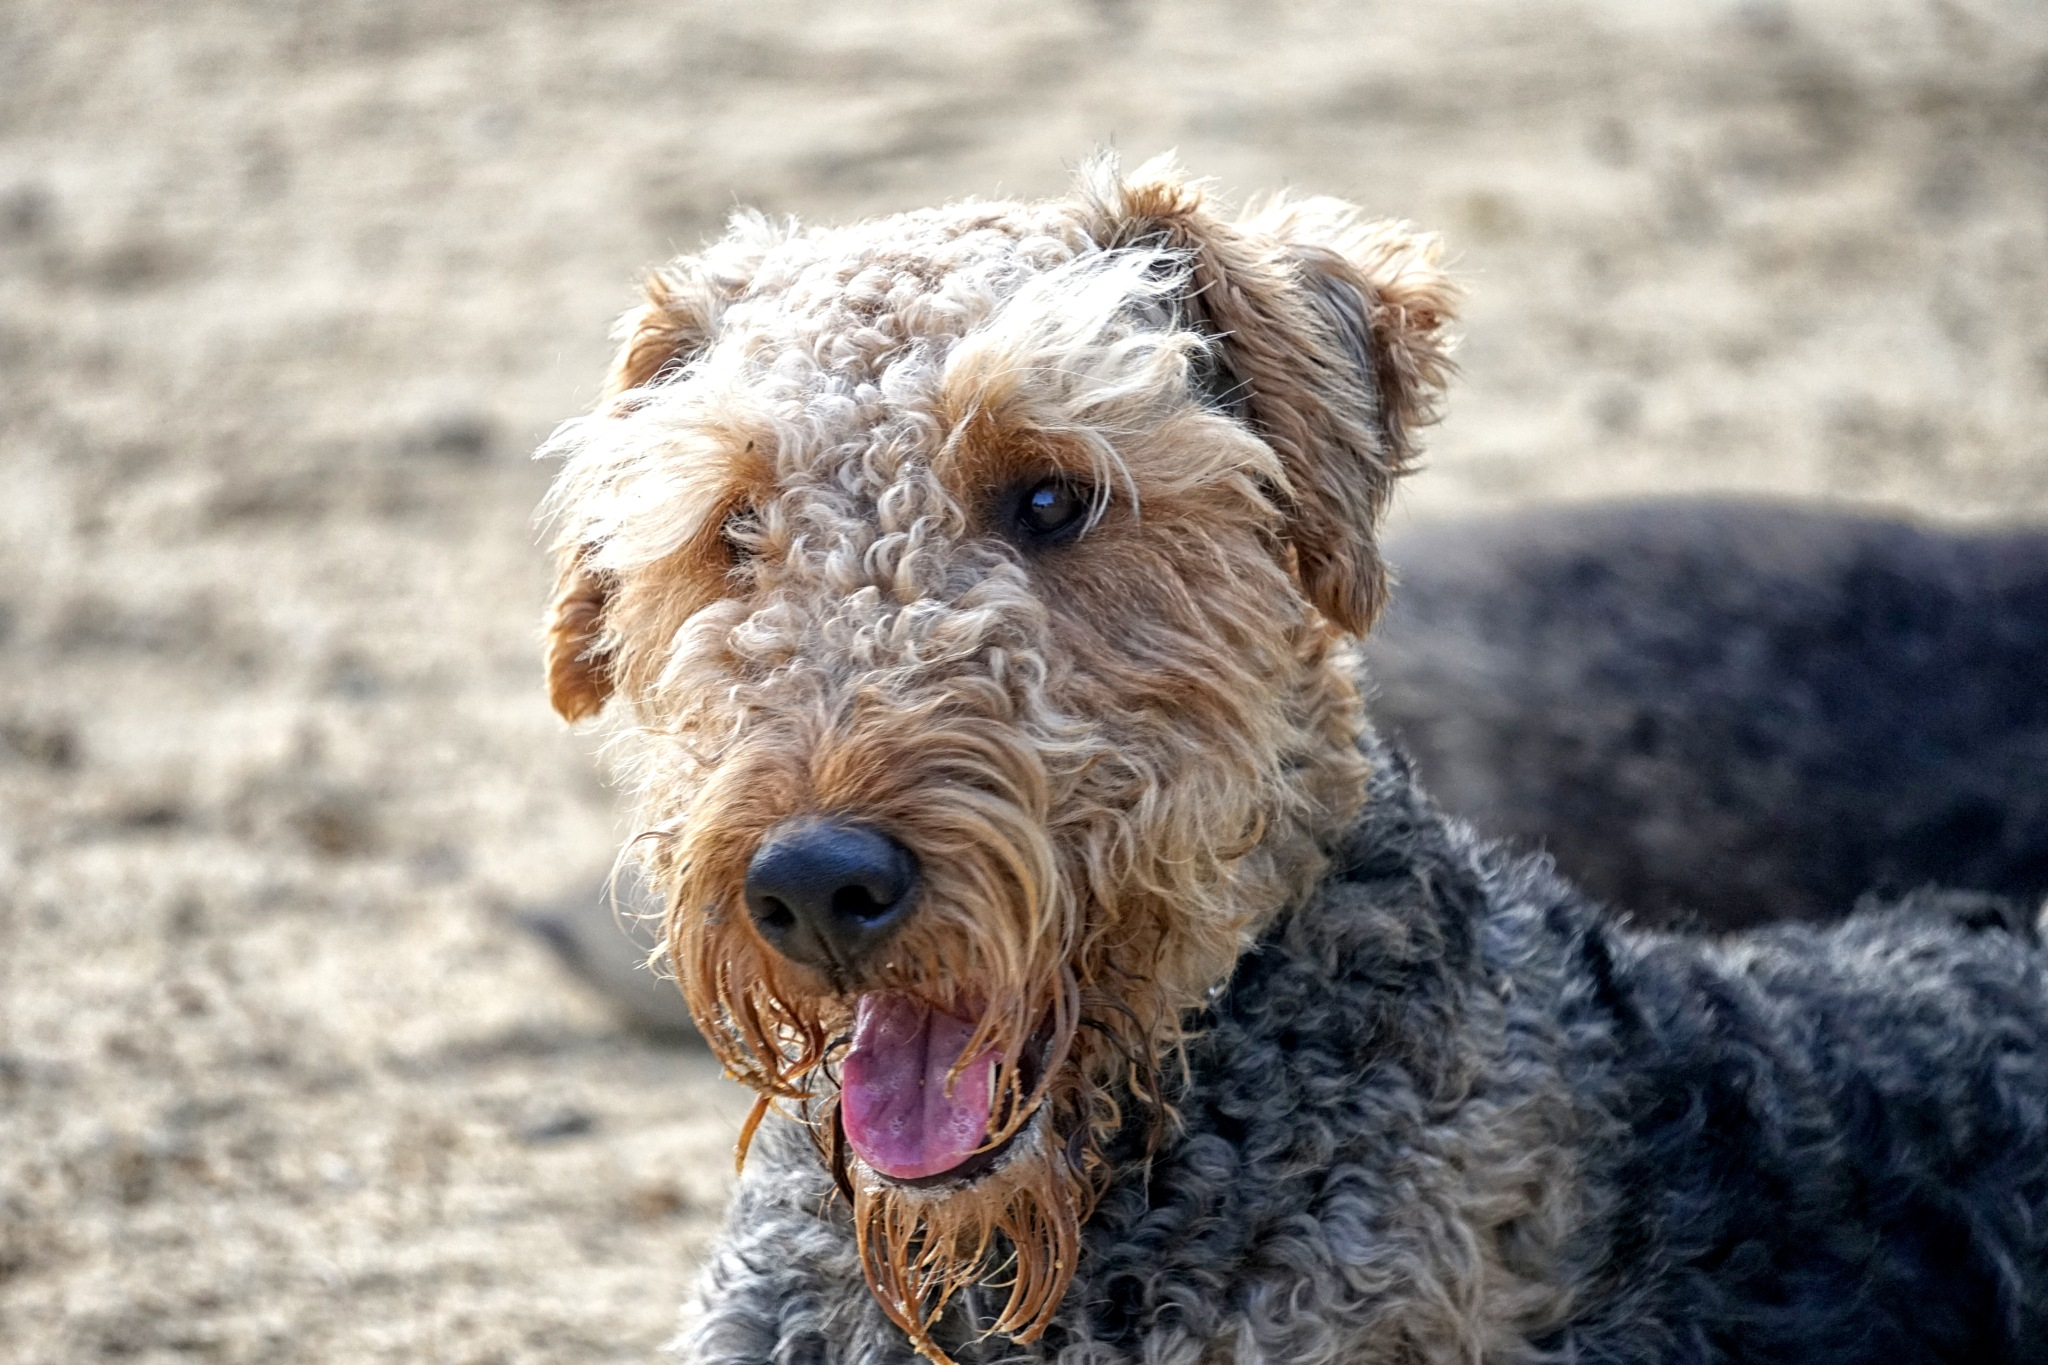 The Airedale terrier by Carlos Rosa Ferreira